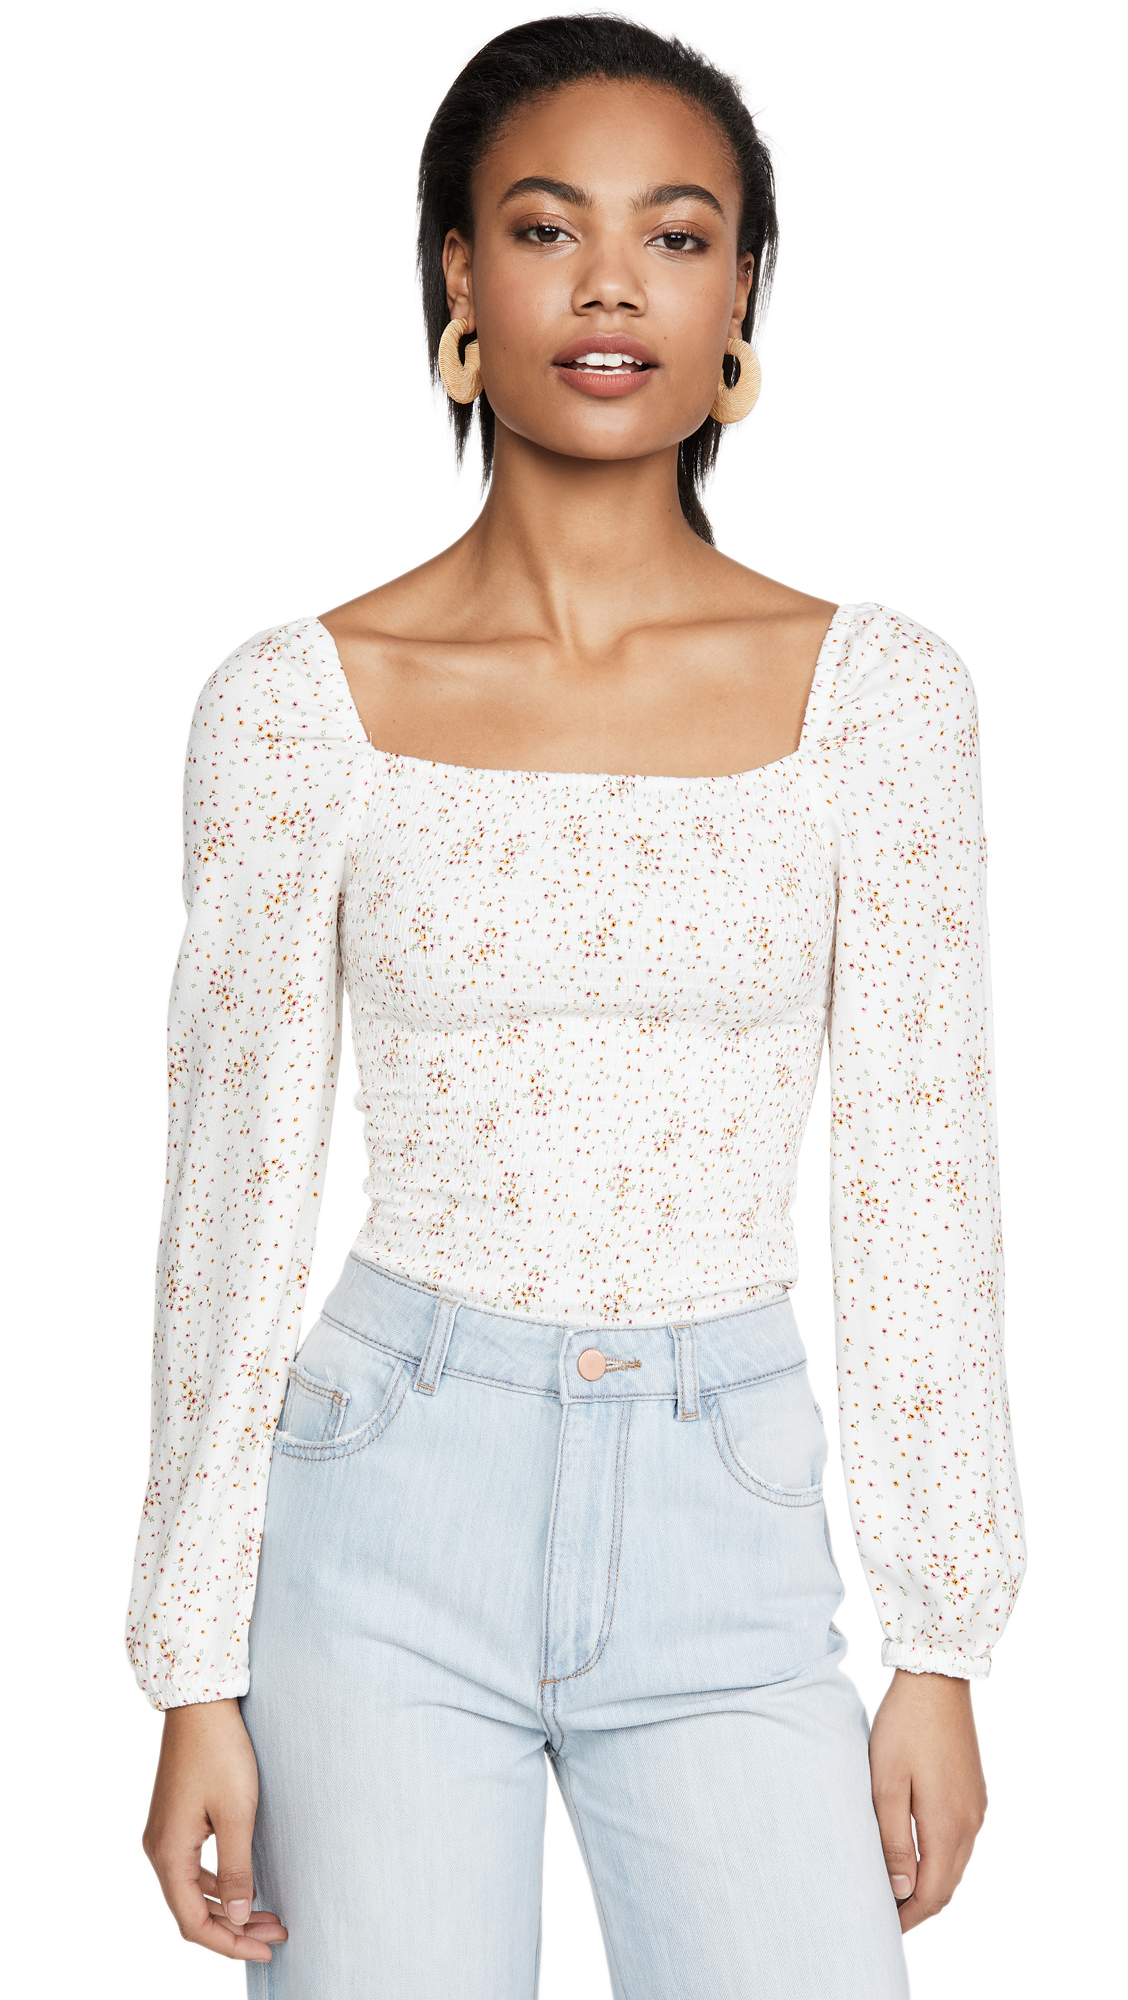 cupcakes and cashmere Savannah Top - 30% Off Sale